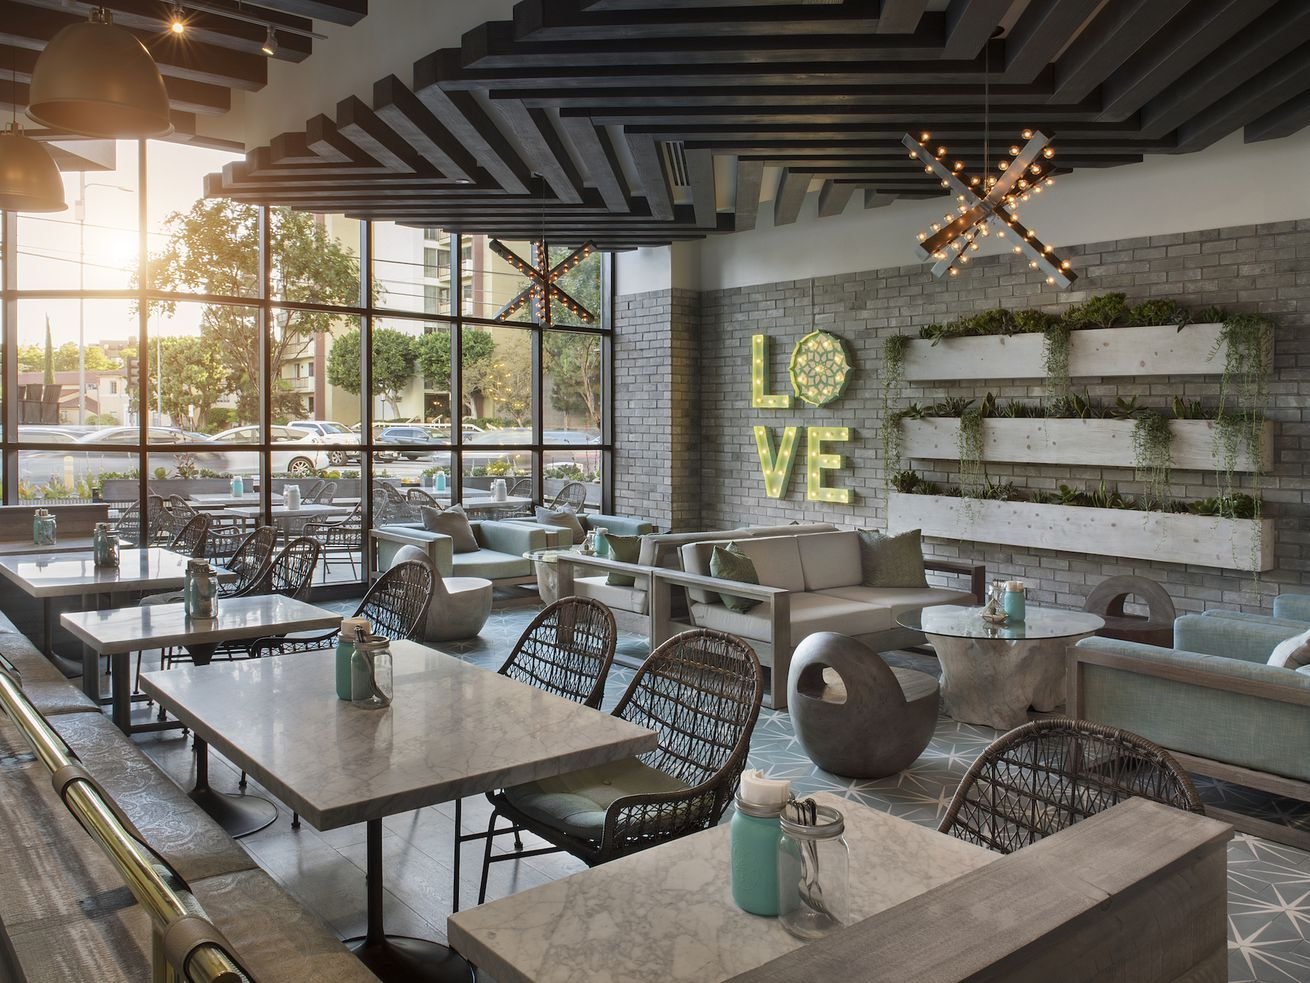 Tocaya Organica Does Healthy Mexican at Crowded Beverly ...